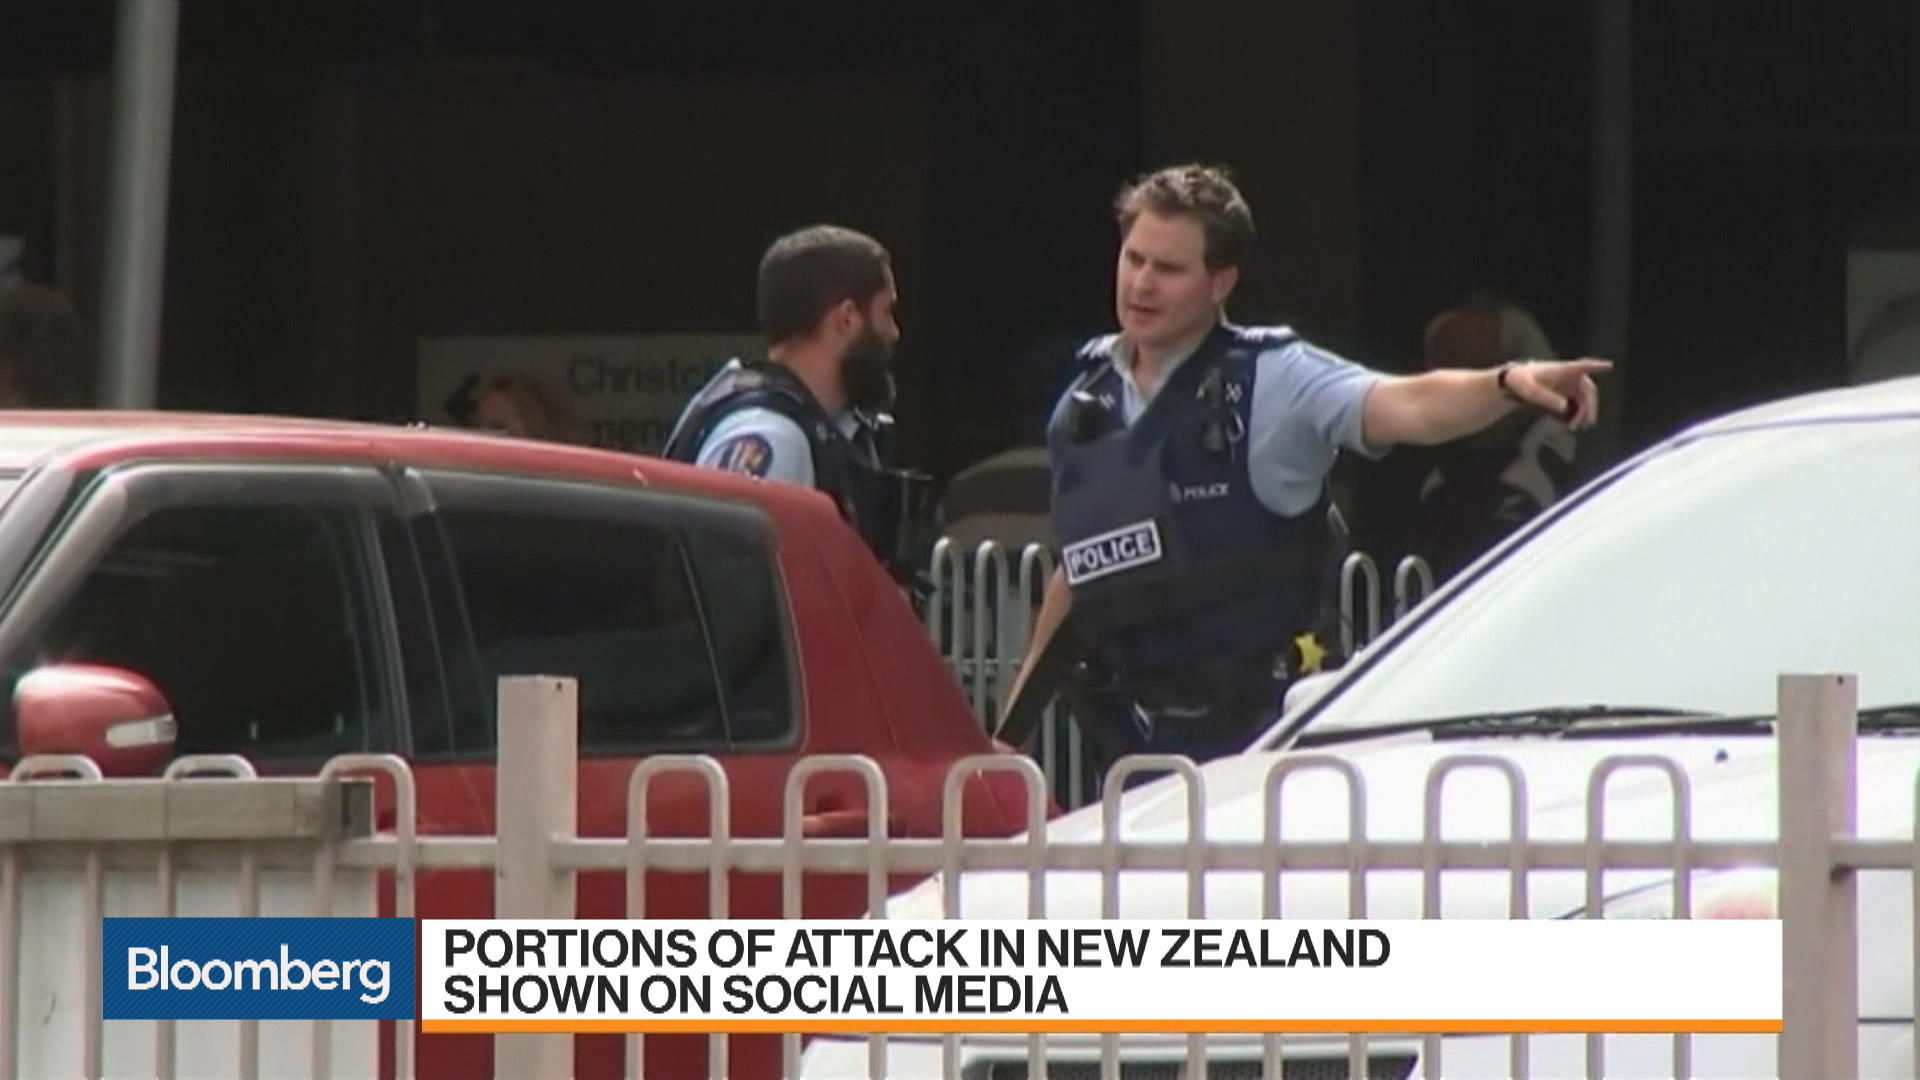 Mosque Shooting Live Stream Pinterest: Facebook, Social Media Criticized For Live Stream Of